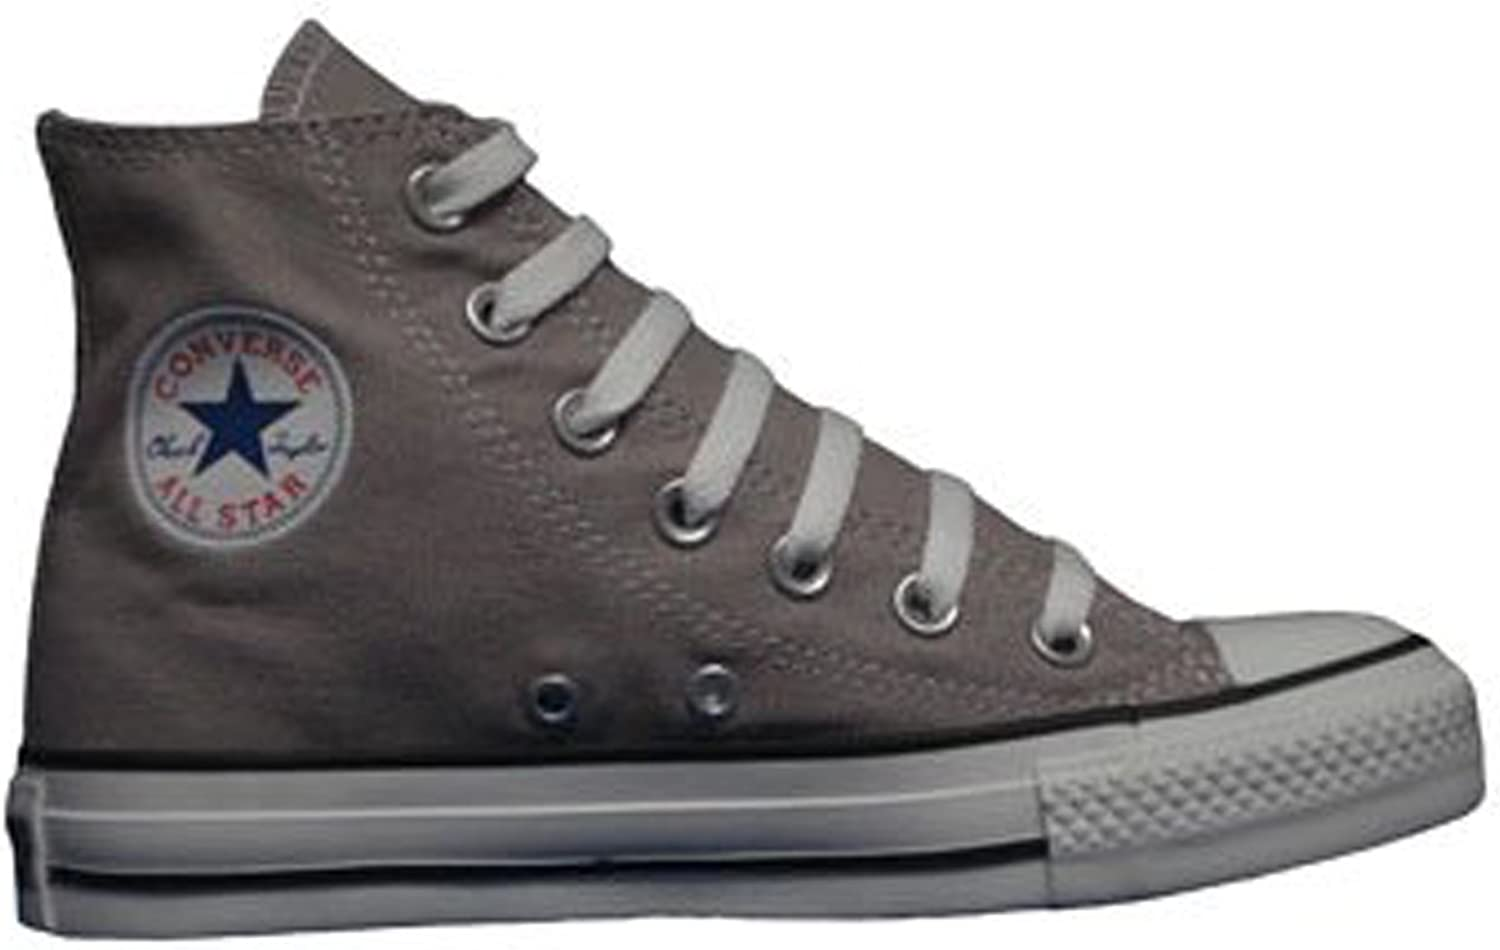 Converse Chuck Taylor All Star Hi Top Atmosphere 125805F